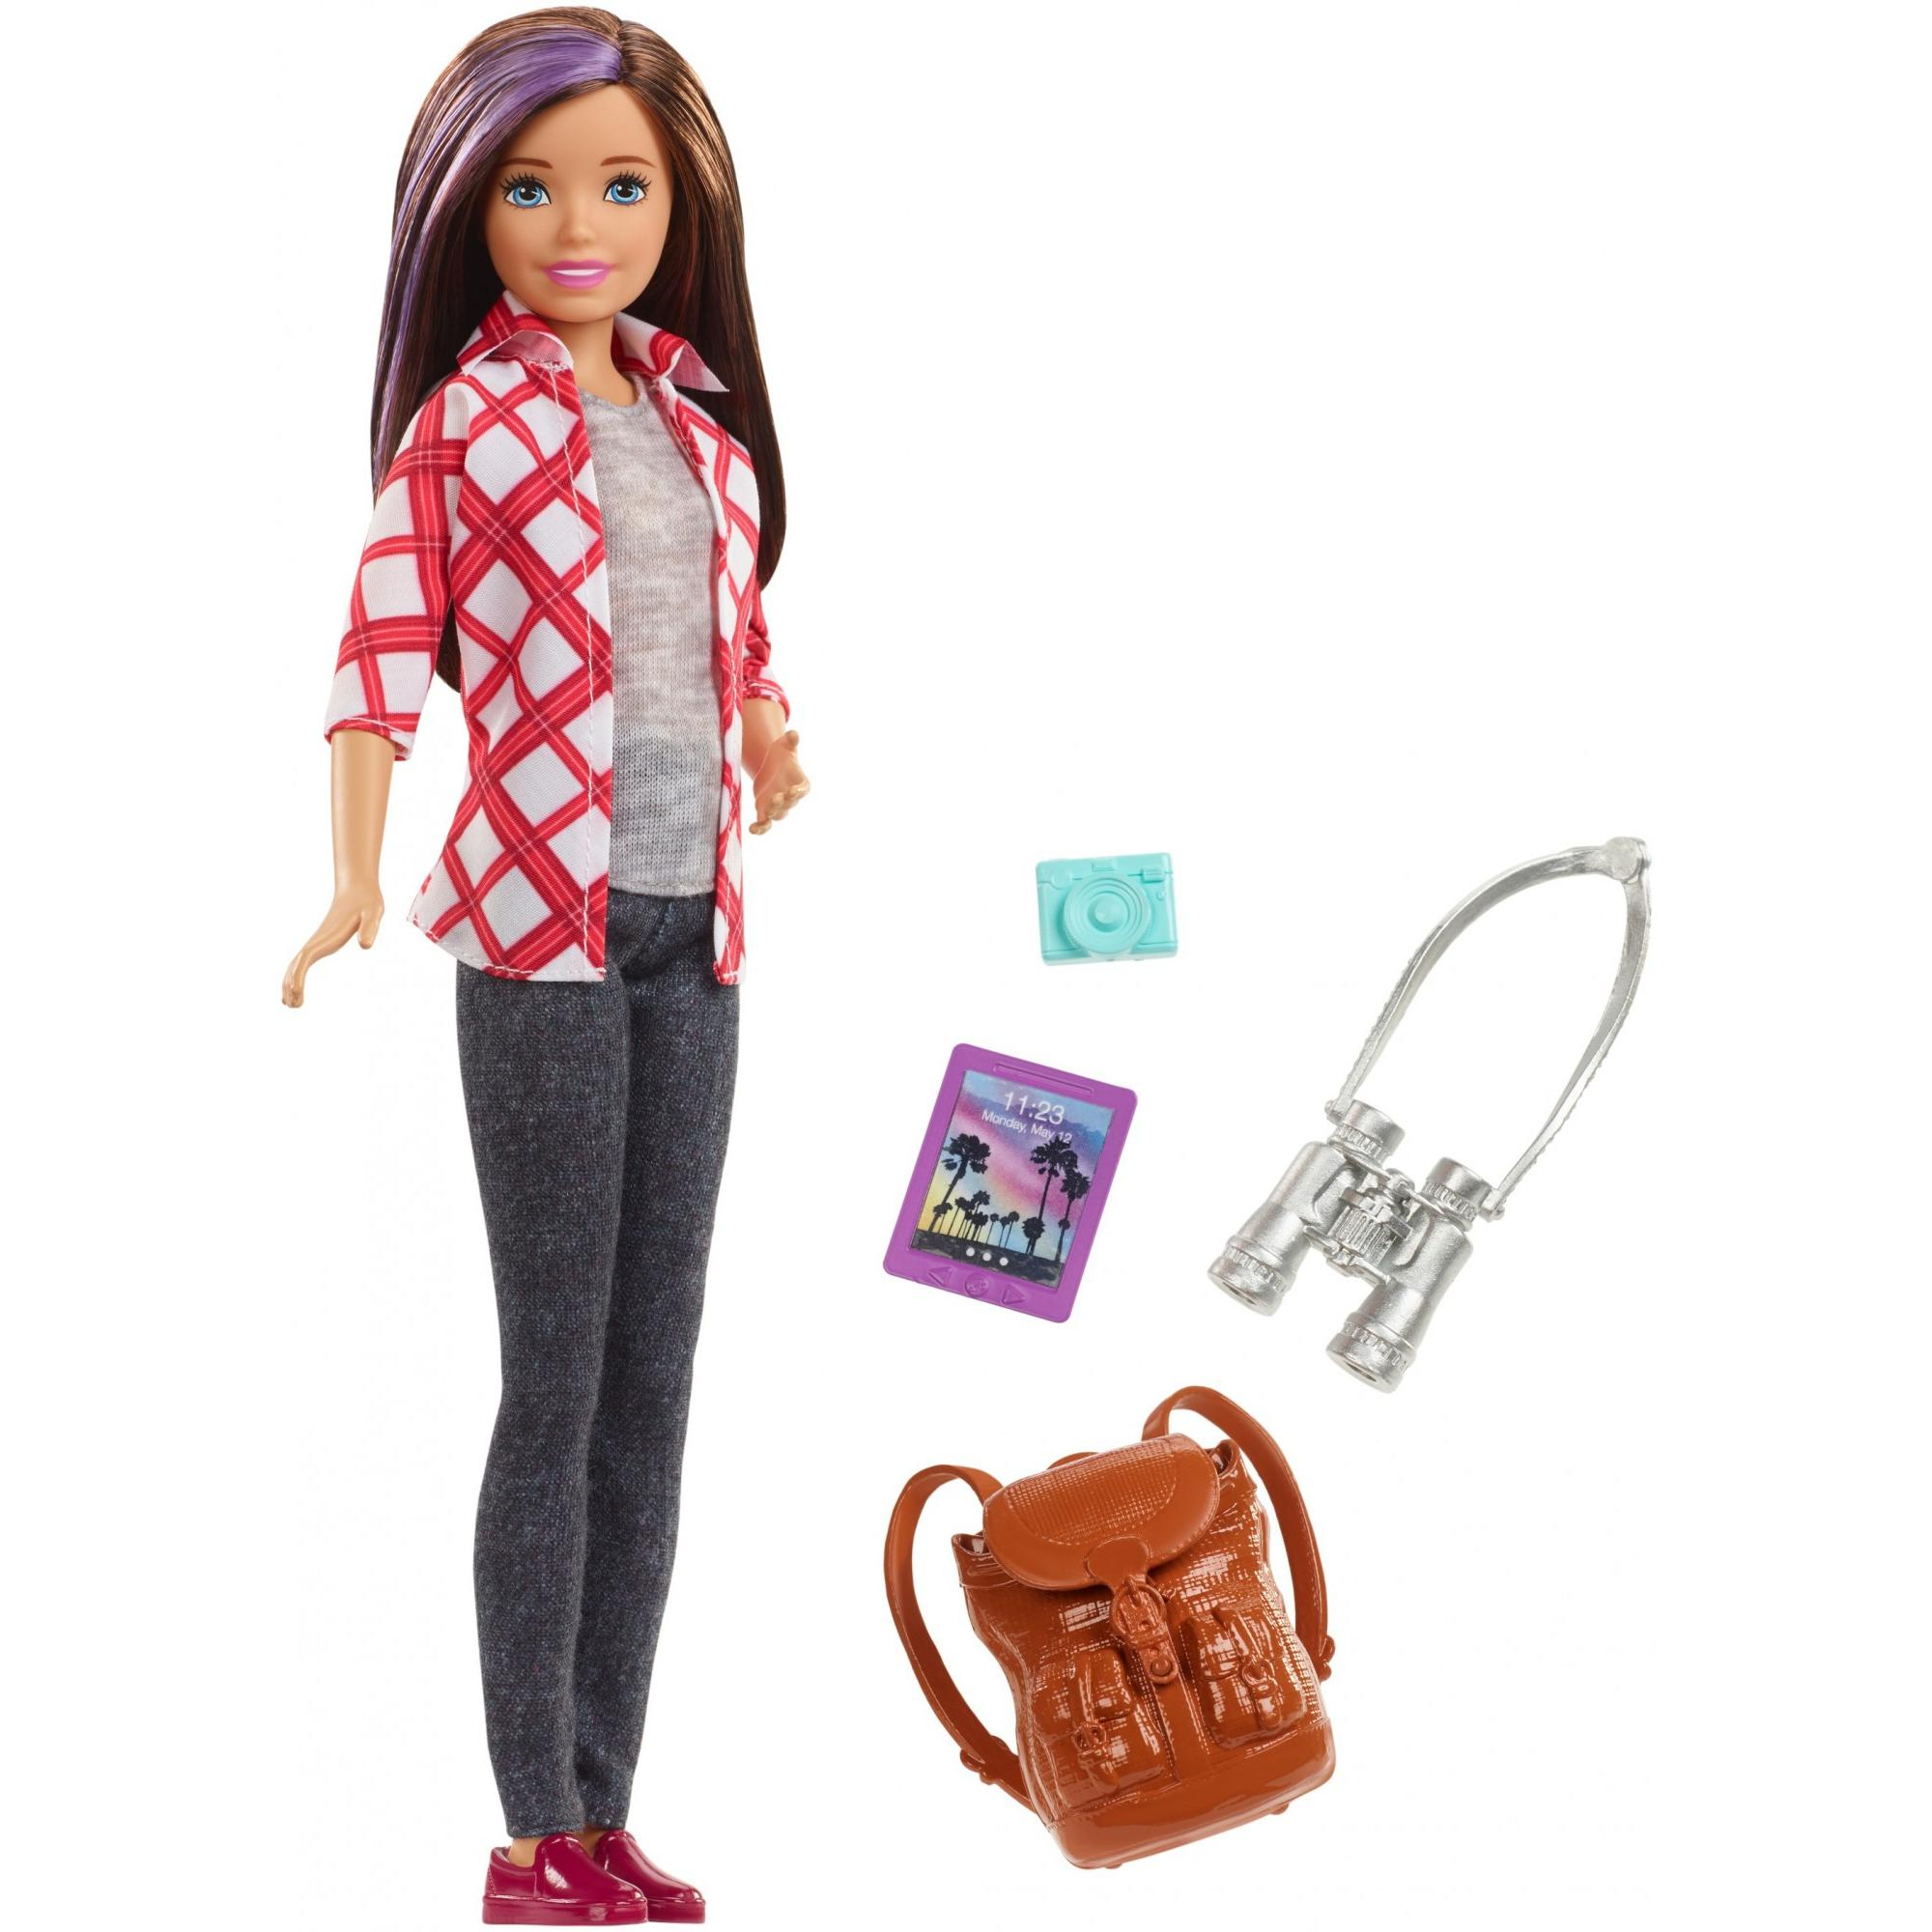 Barbie Skipper Travel Doll with 4 Tourist Themed Accessories